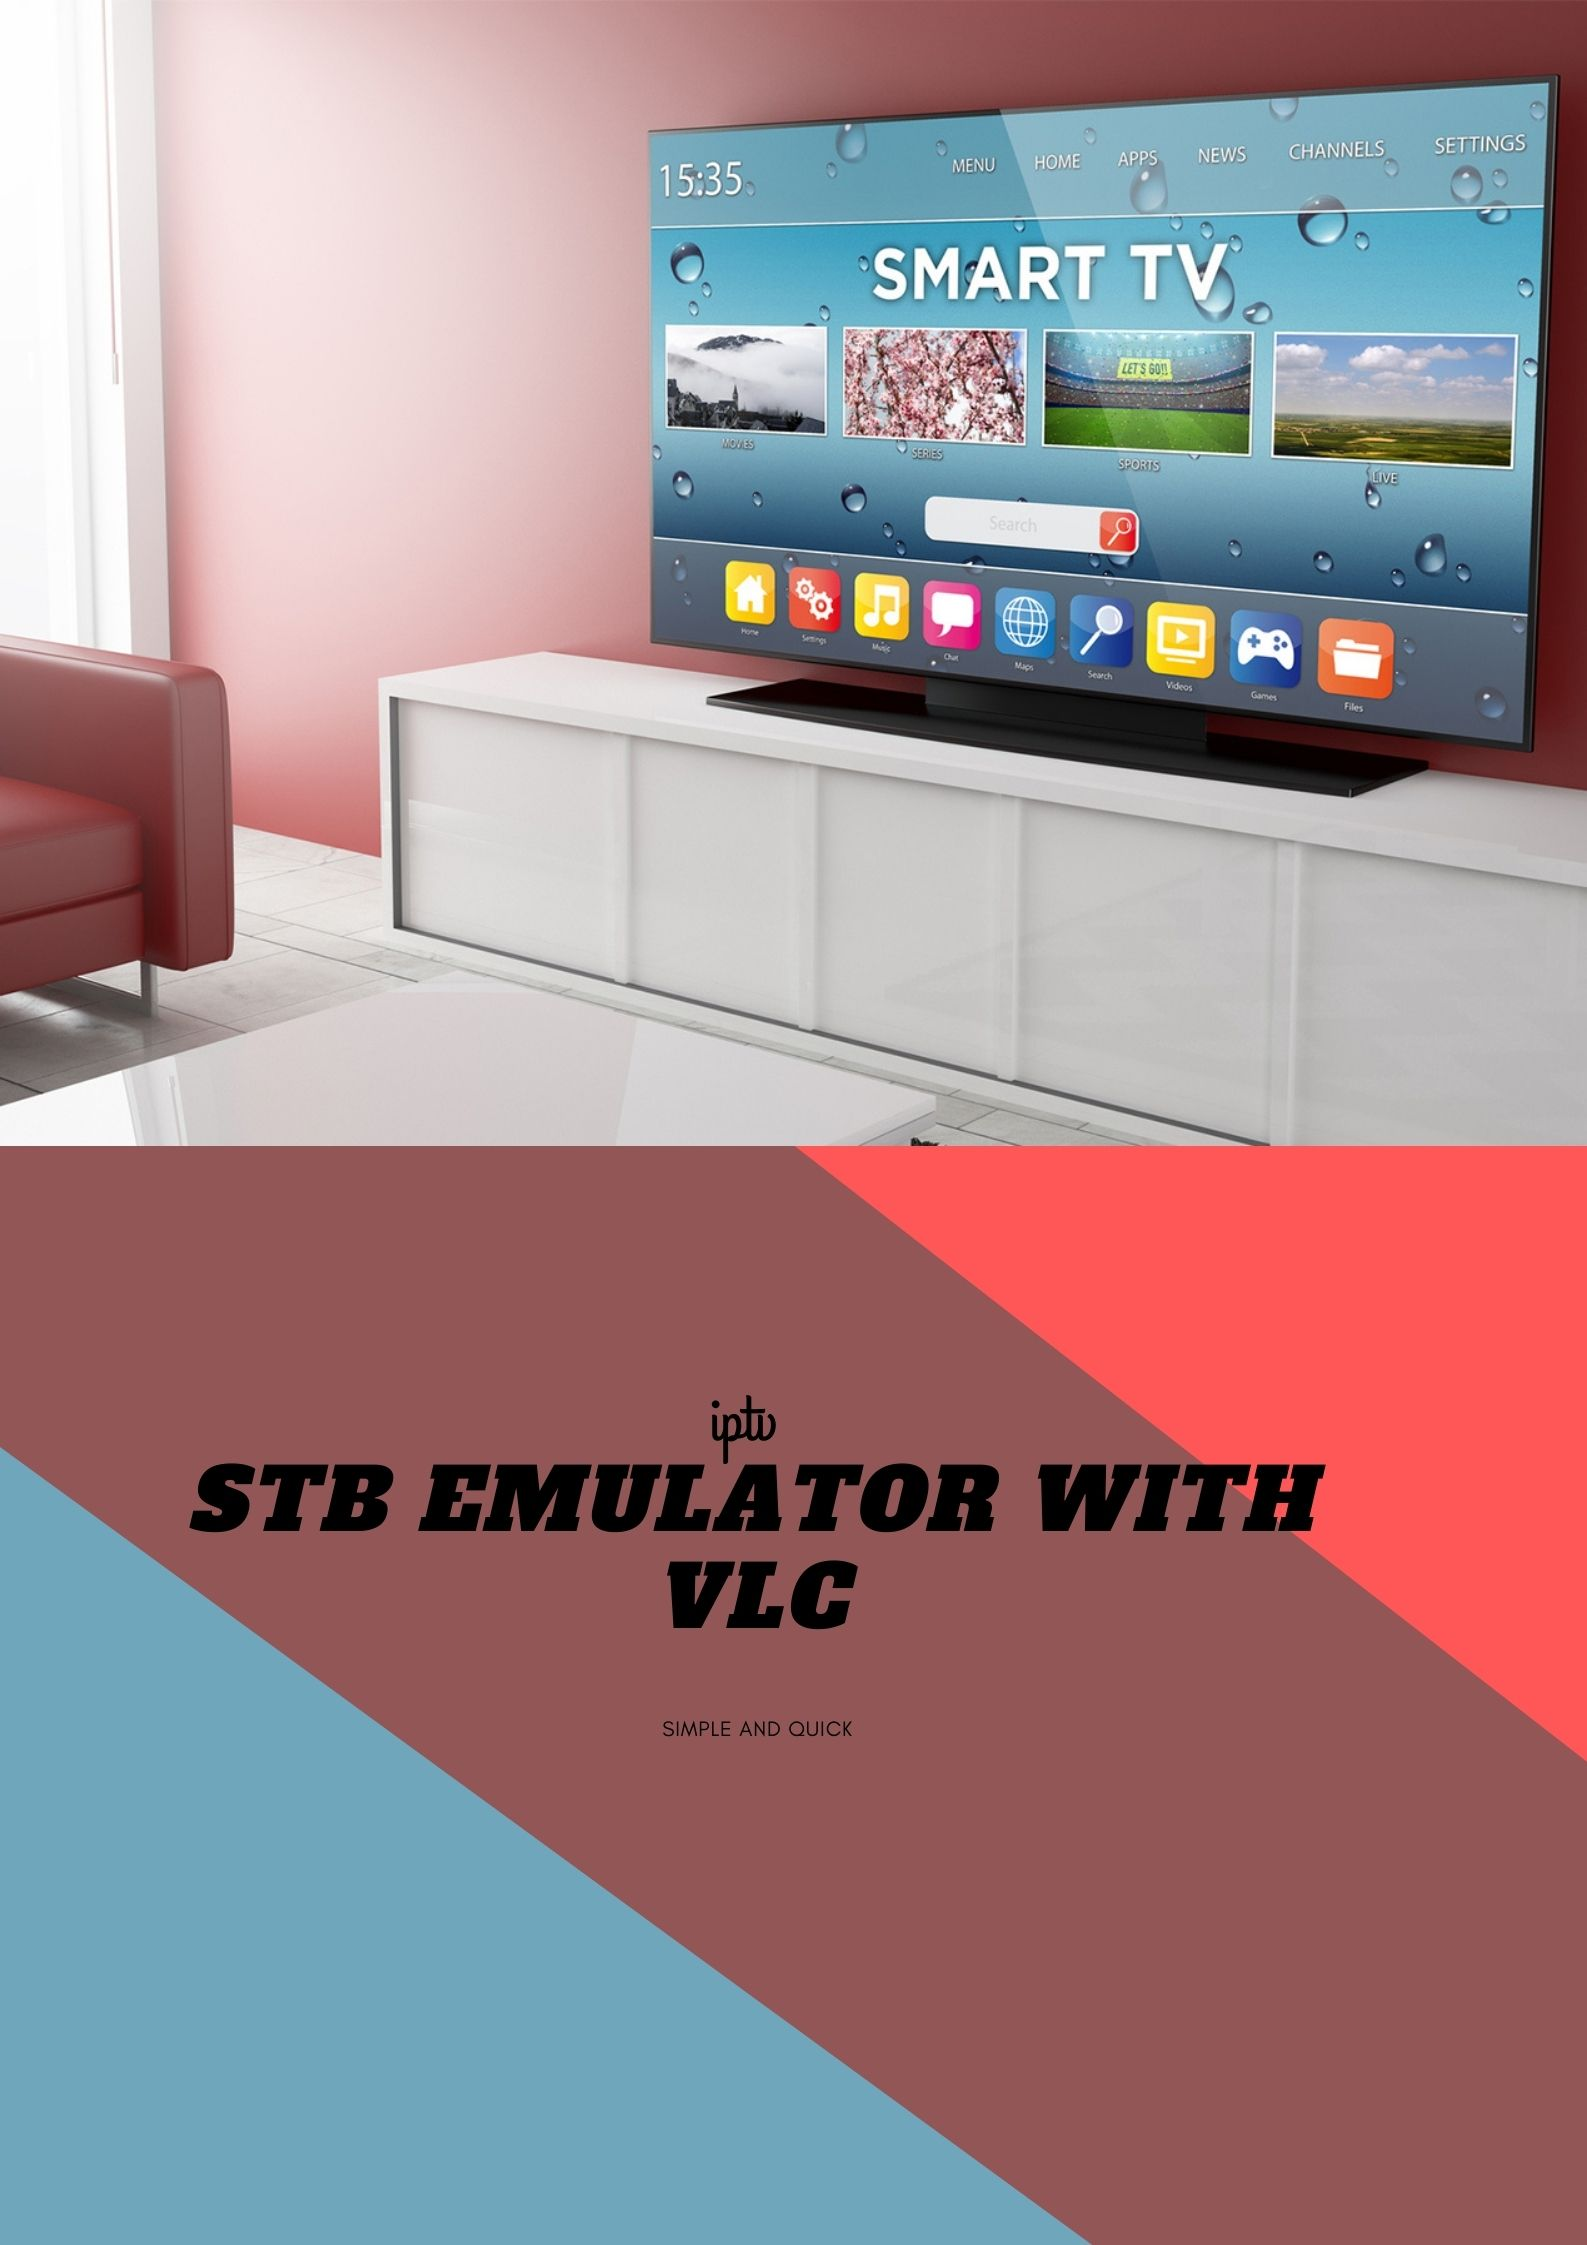 how to install stb emulator on windows 10